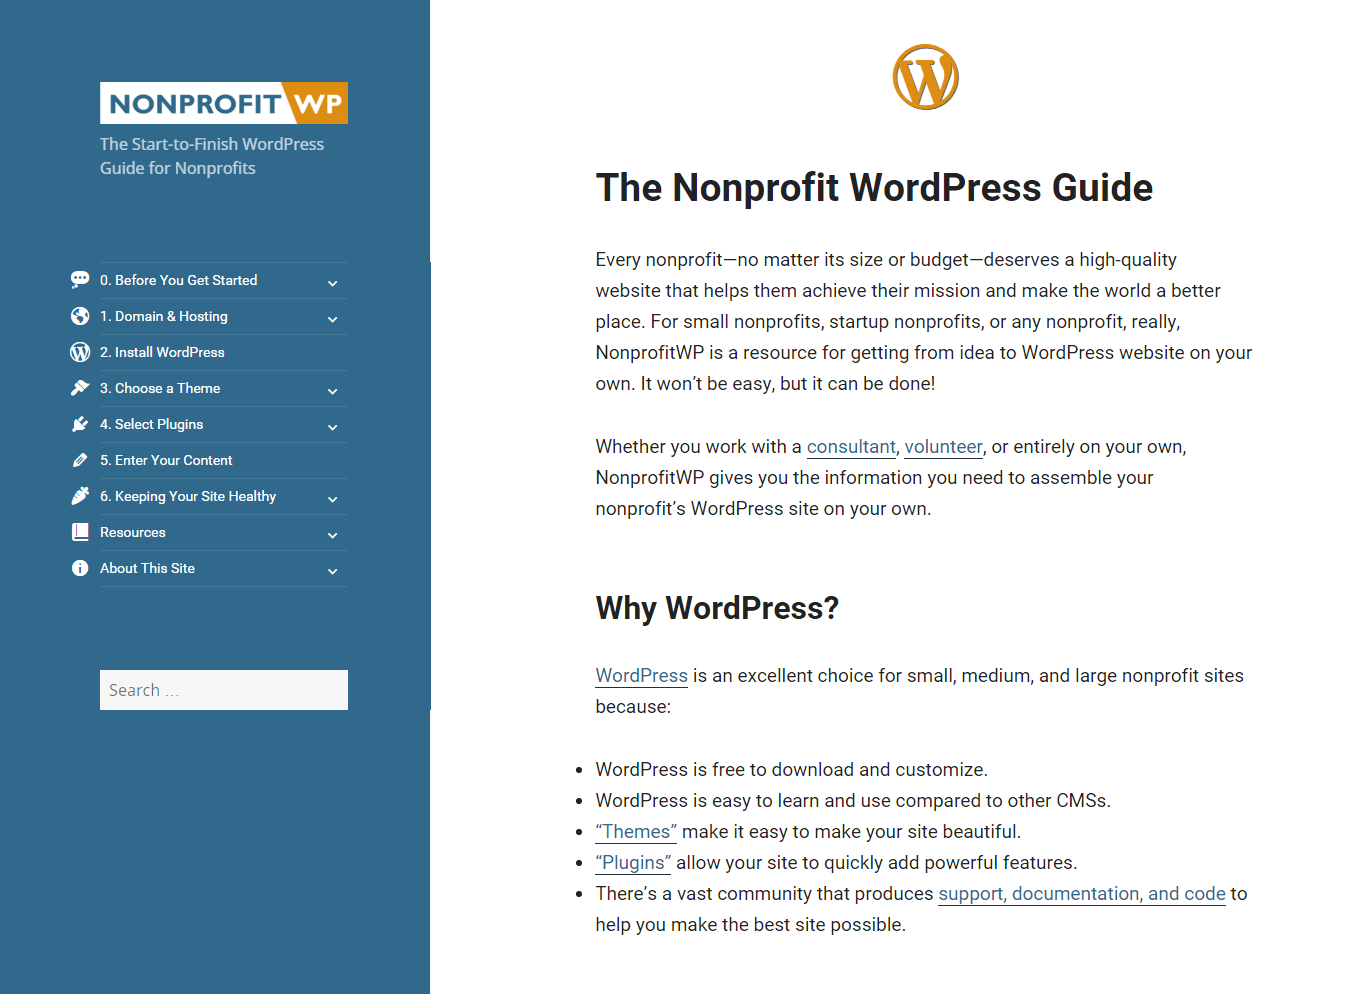 Nonprofit guides array nonprofit wp the wordpress guide for nonprofits rh nonprofitwp fandeluxe Image collections